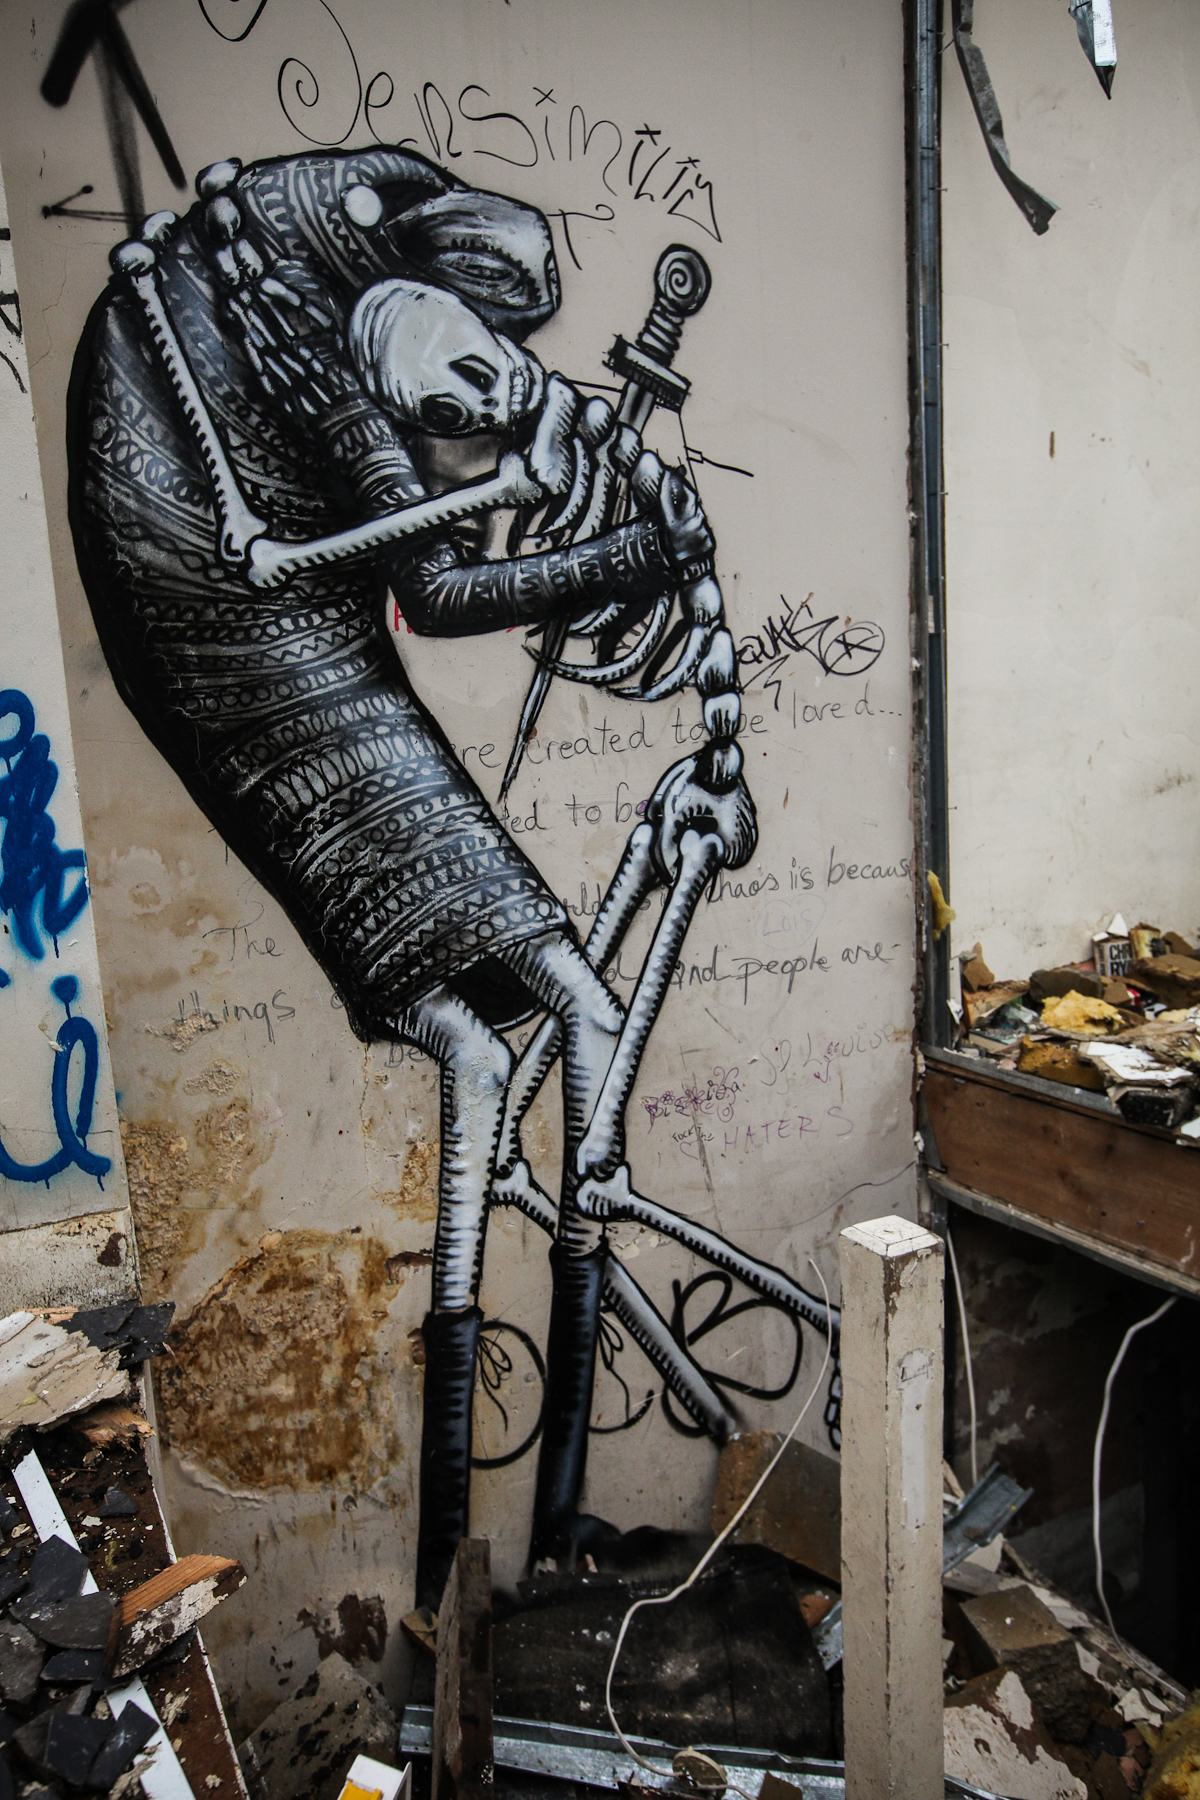 phlegm-run-and-christiaan-nagel-for-last-breath-project-03